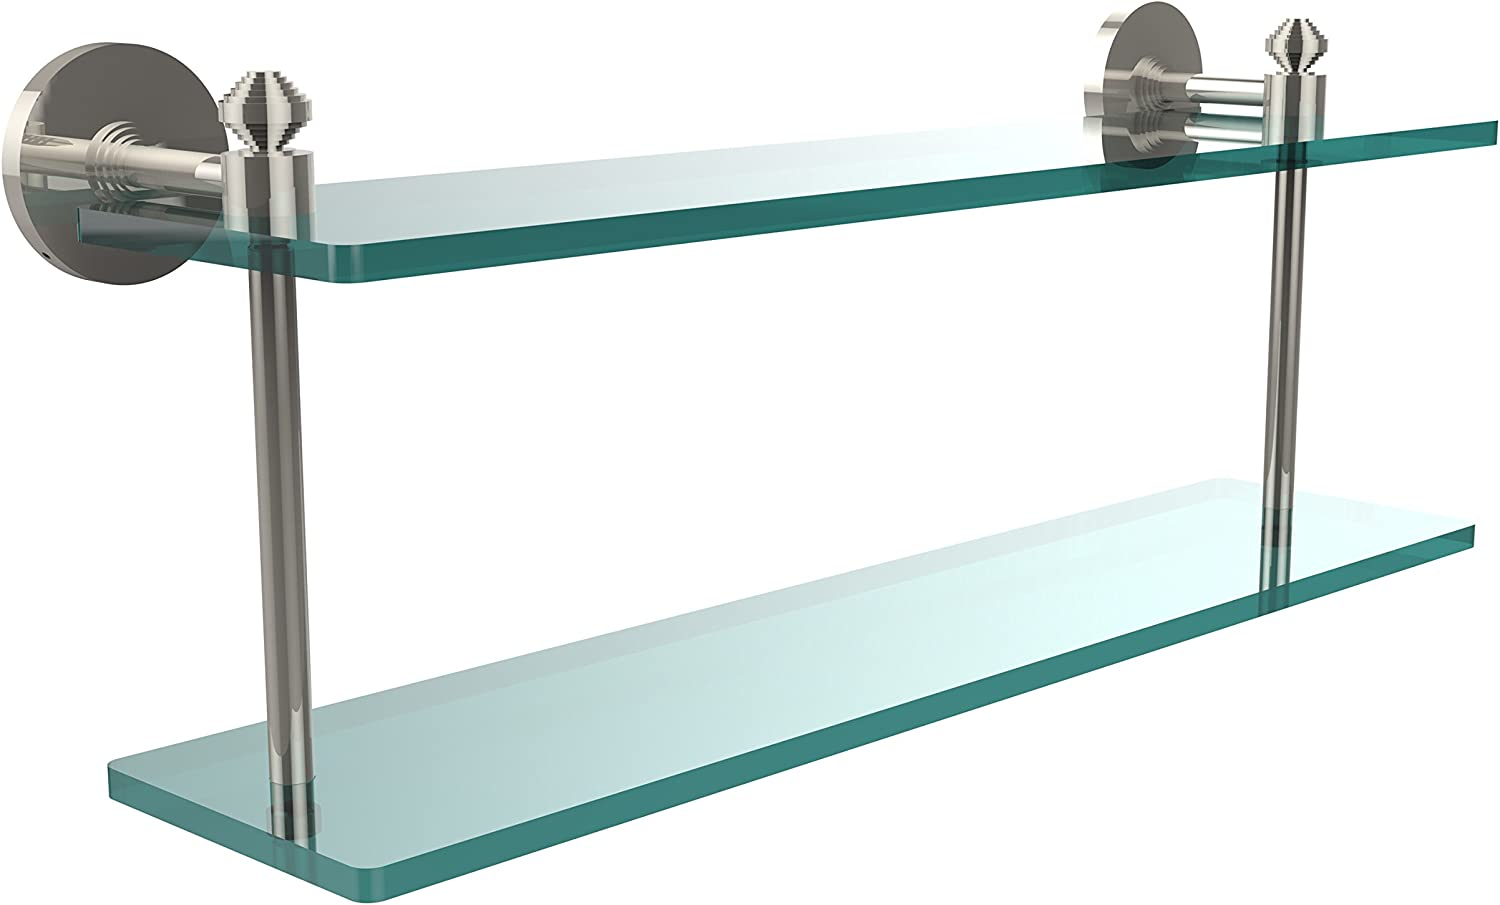 Allied Precision Industries Southbeach Collection 22 Inch Two Tiered Glass Shelf, SB-2 22-PNI, Polished Nickel, 22 in.